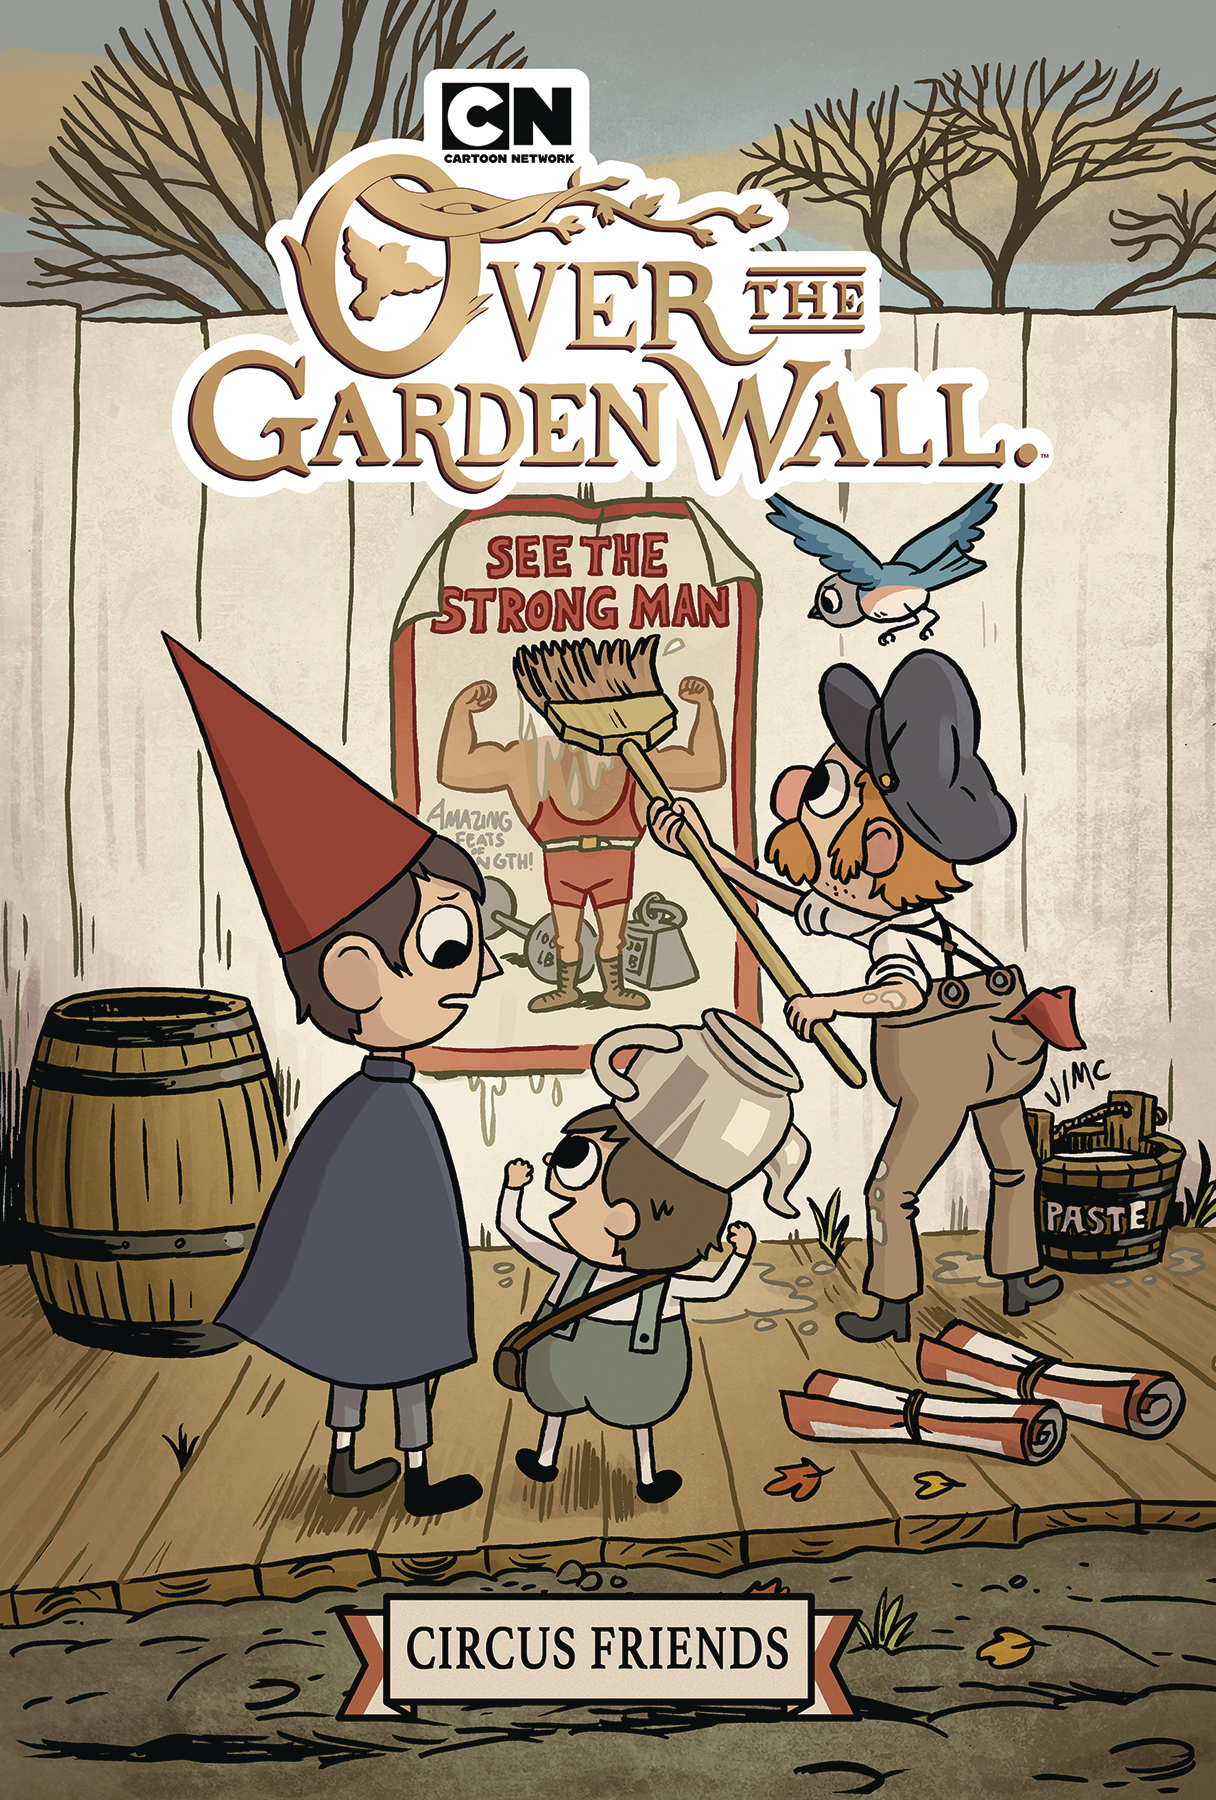 OVER GARDEN WALL CIRCUS FRIENDS ORIGINAL GN VOL 02